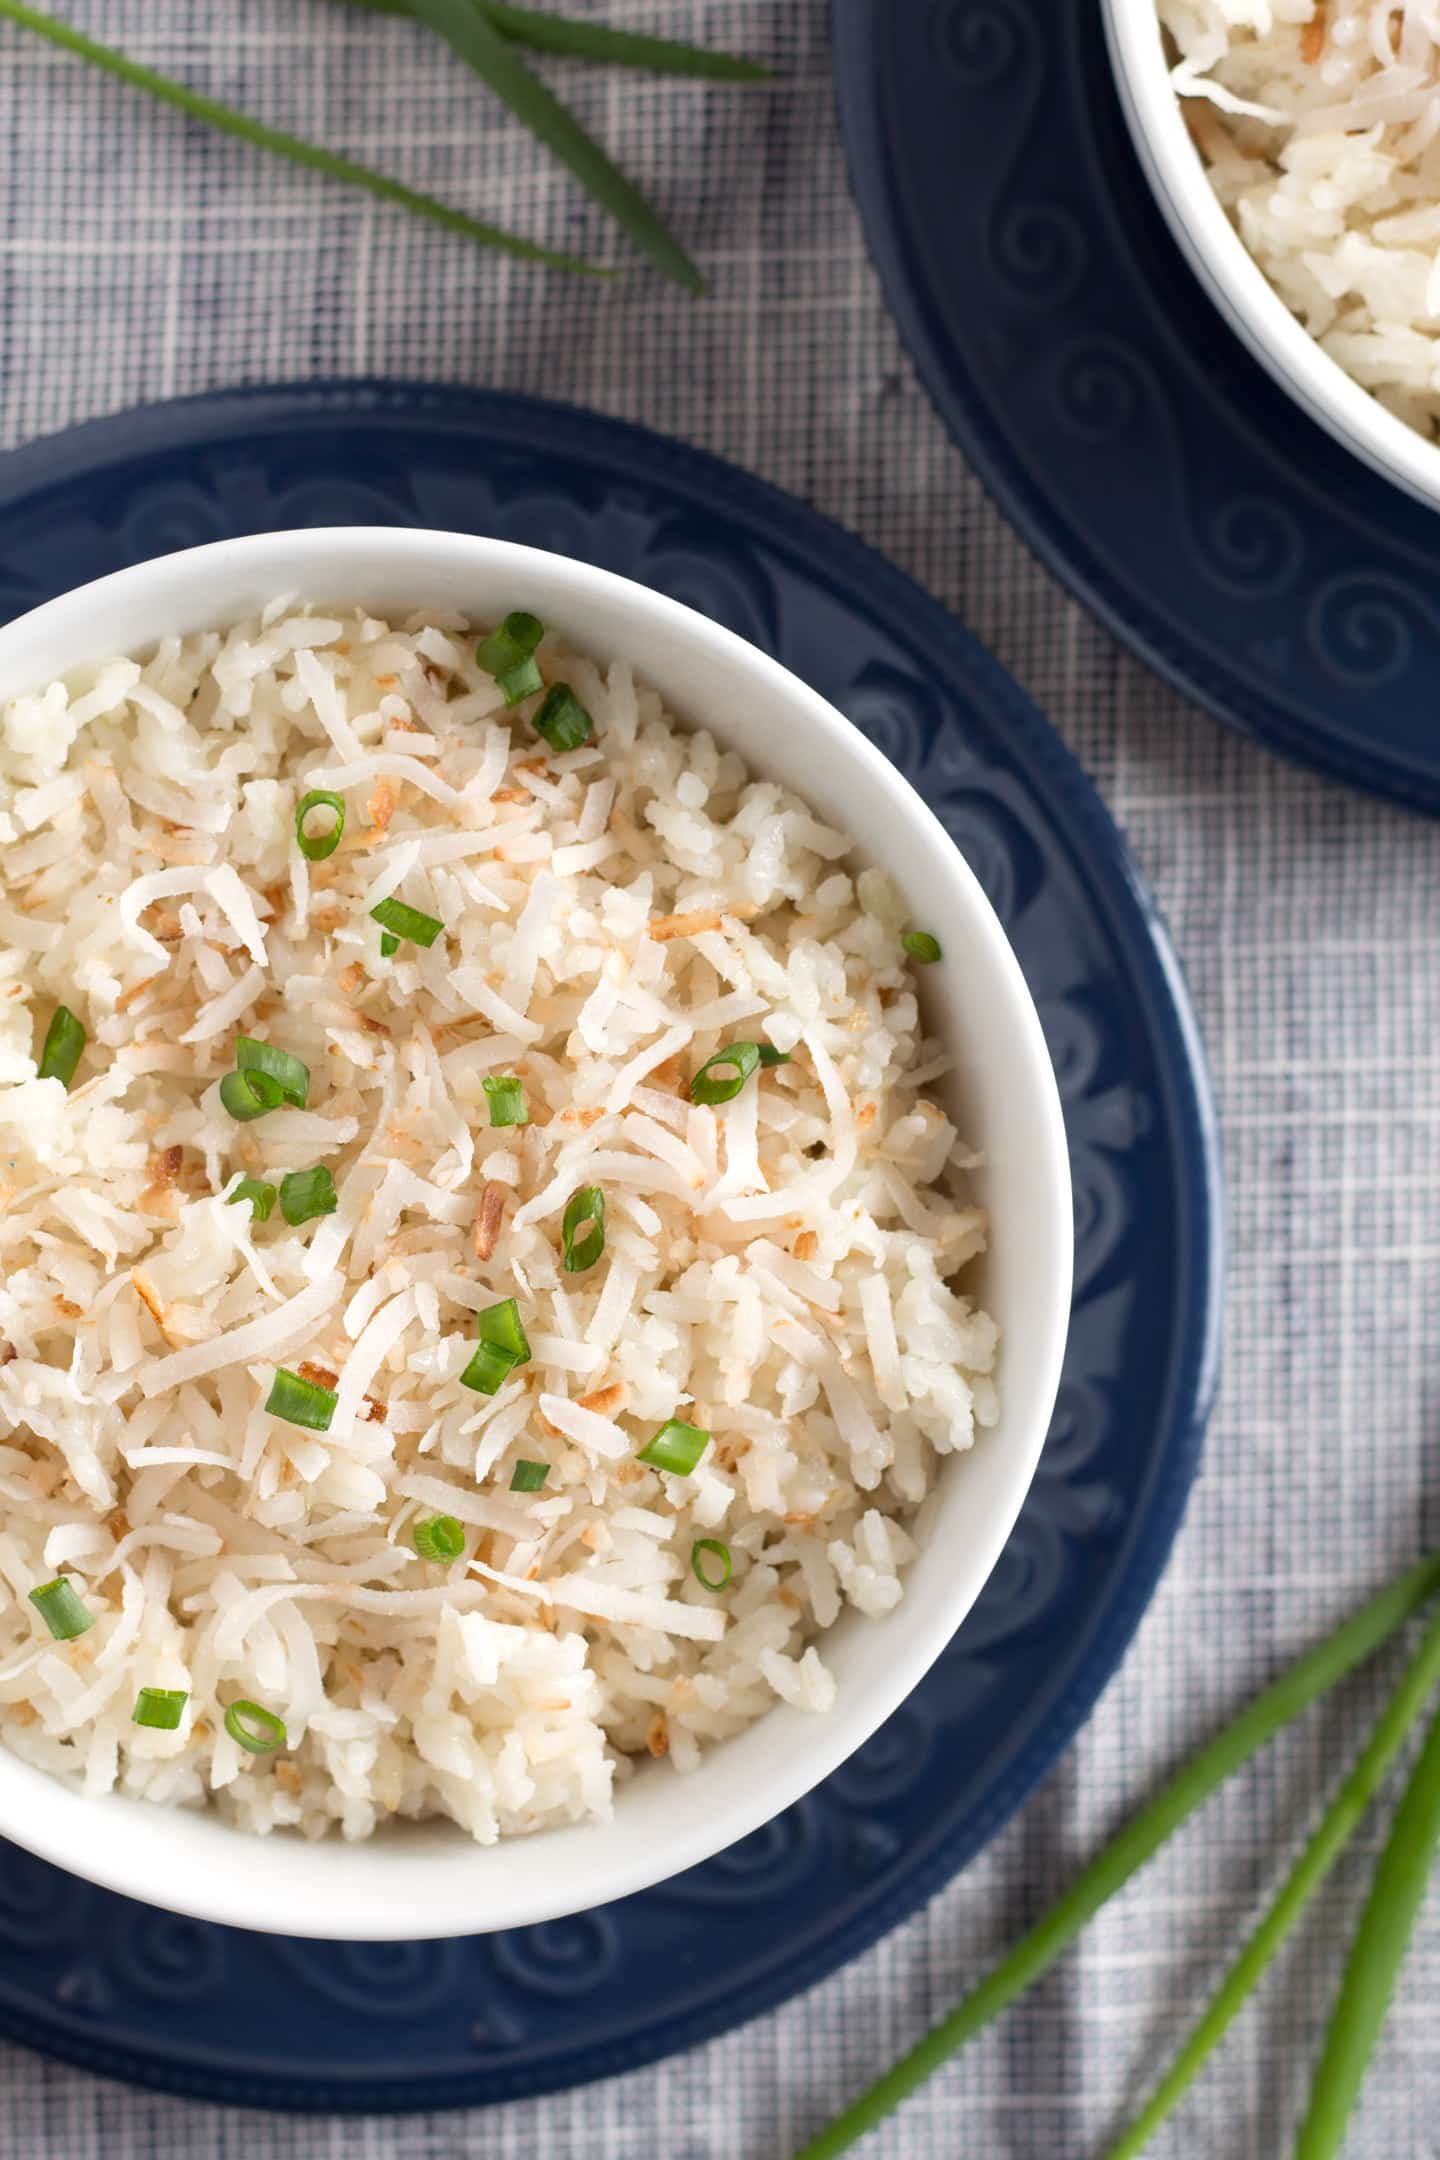 Overhead of bowls of Instant Pot Toasted Coconut Rice on blue plates